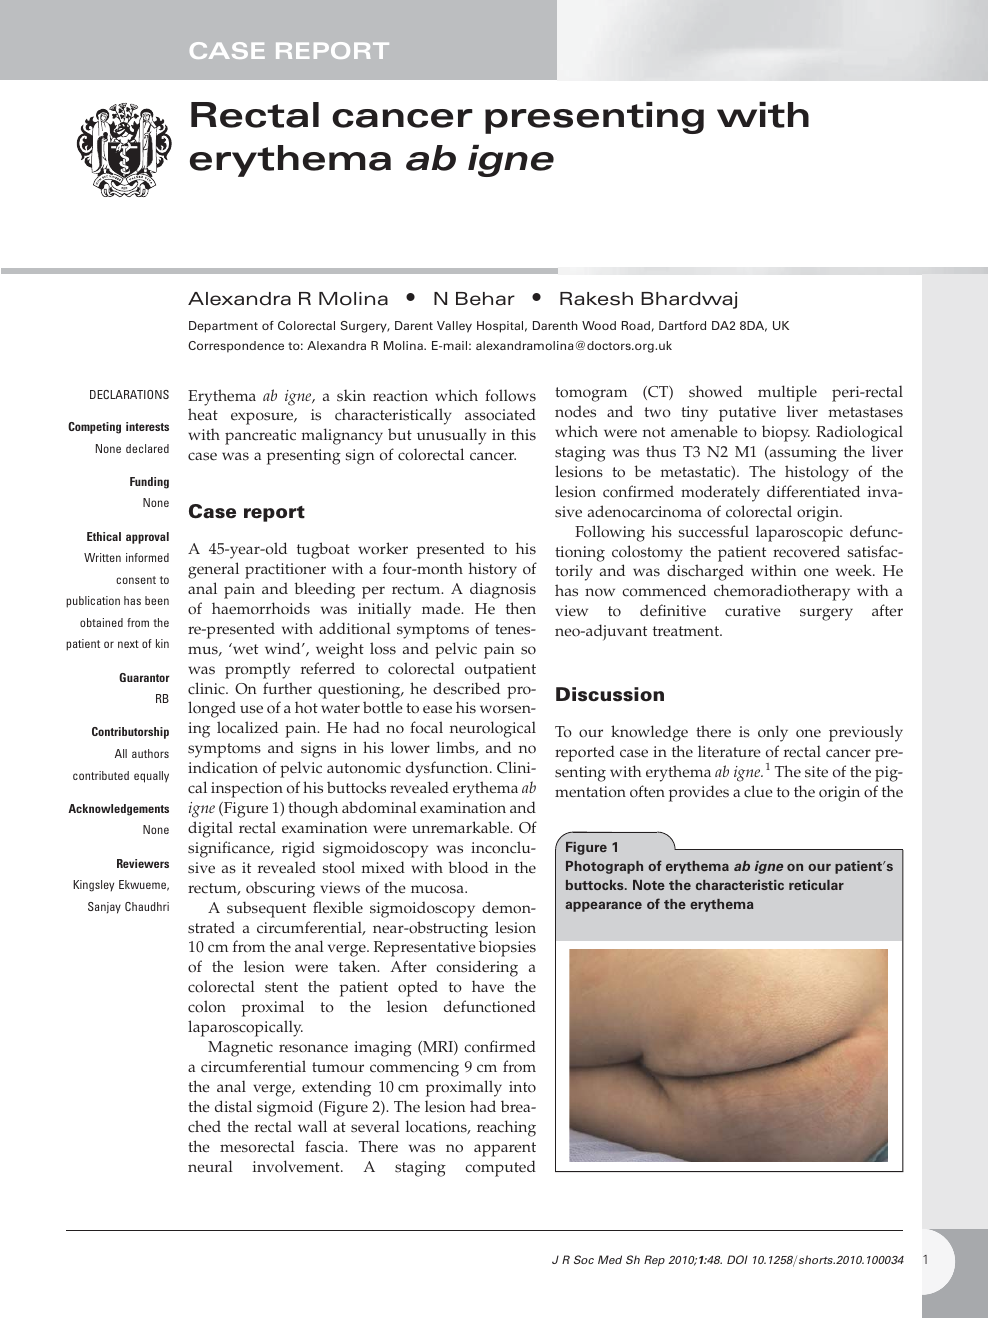 Rectal Cancer Presenting With Erythema Ab Igne Topic Of Research Paper In Clinical Medicine Download Scholarly Article Pdf And Read For Free On Cyberleninka Open Science Hub